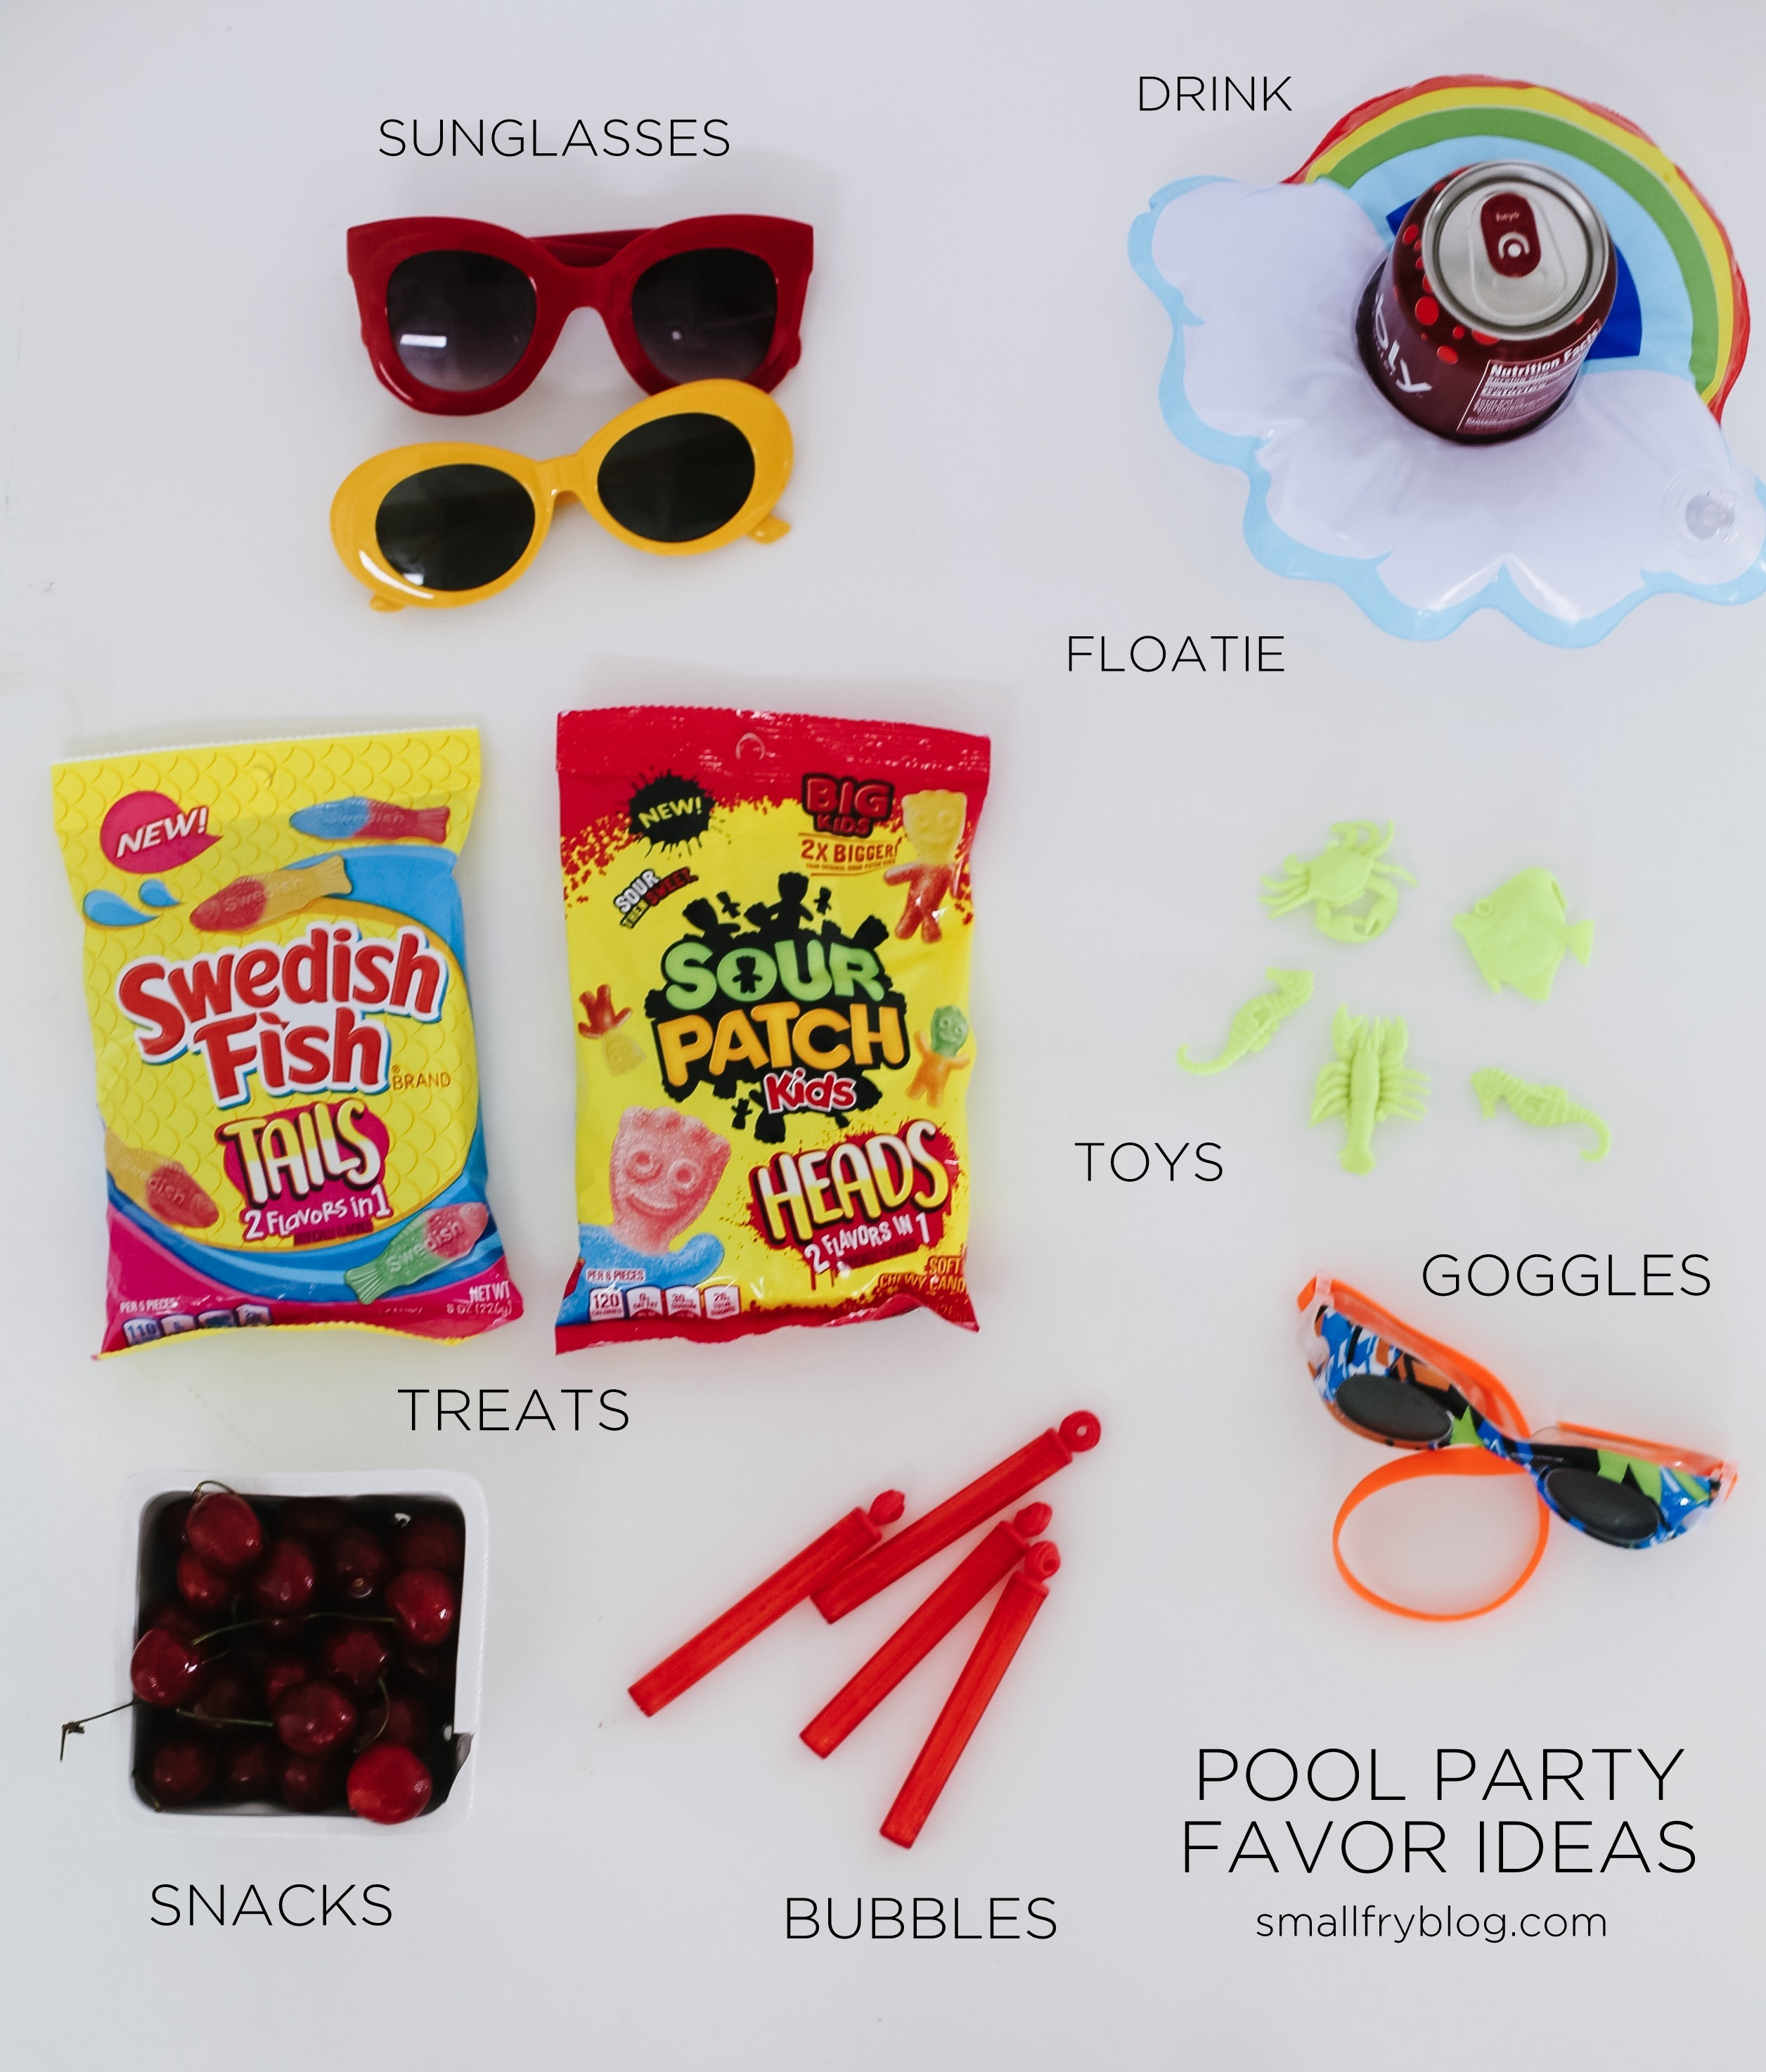 Pool Party Favor Ideas